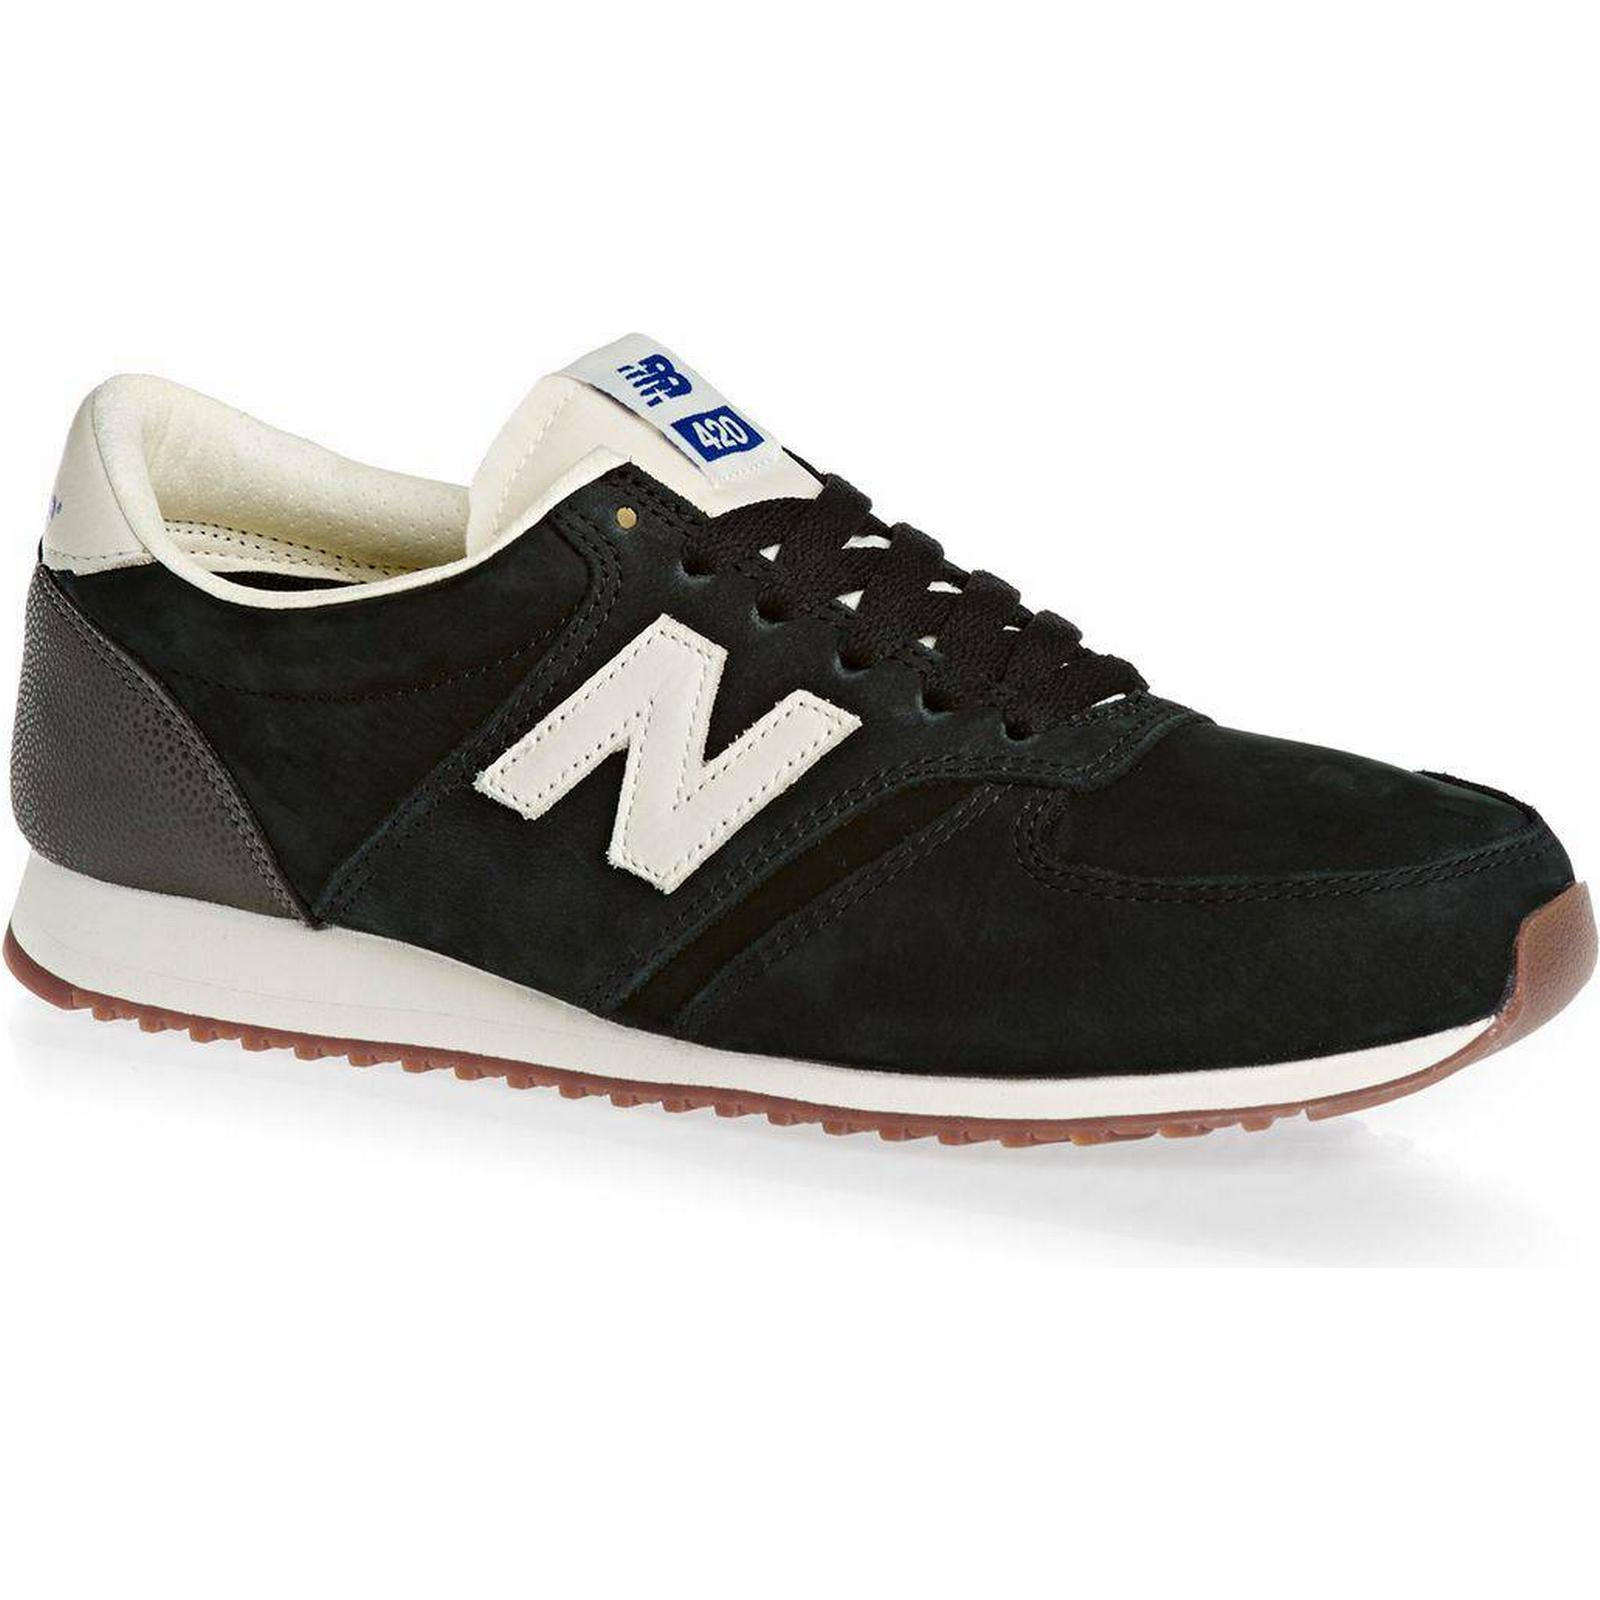 New Balance Trainers Shoes - New Balance U420 Shoes Trainers - Black 780015